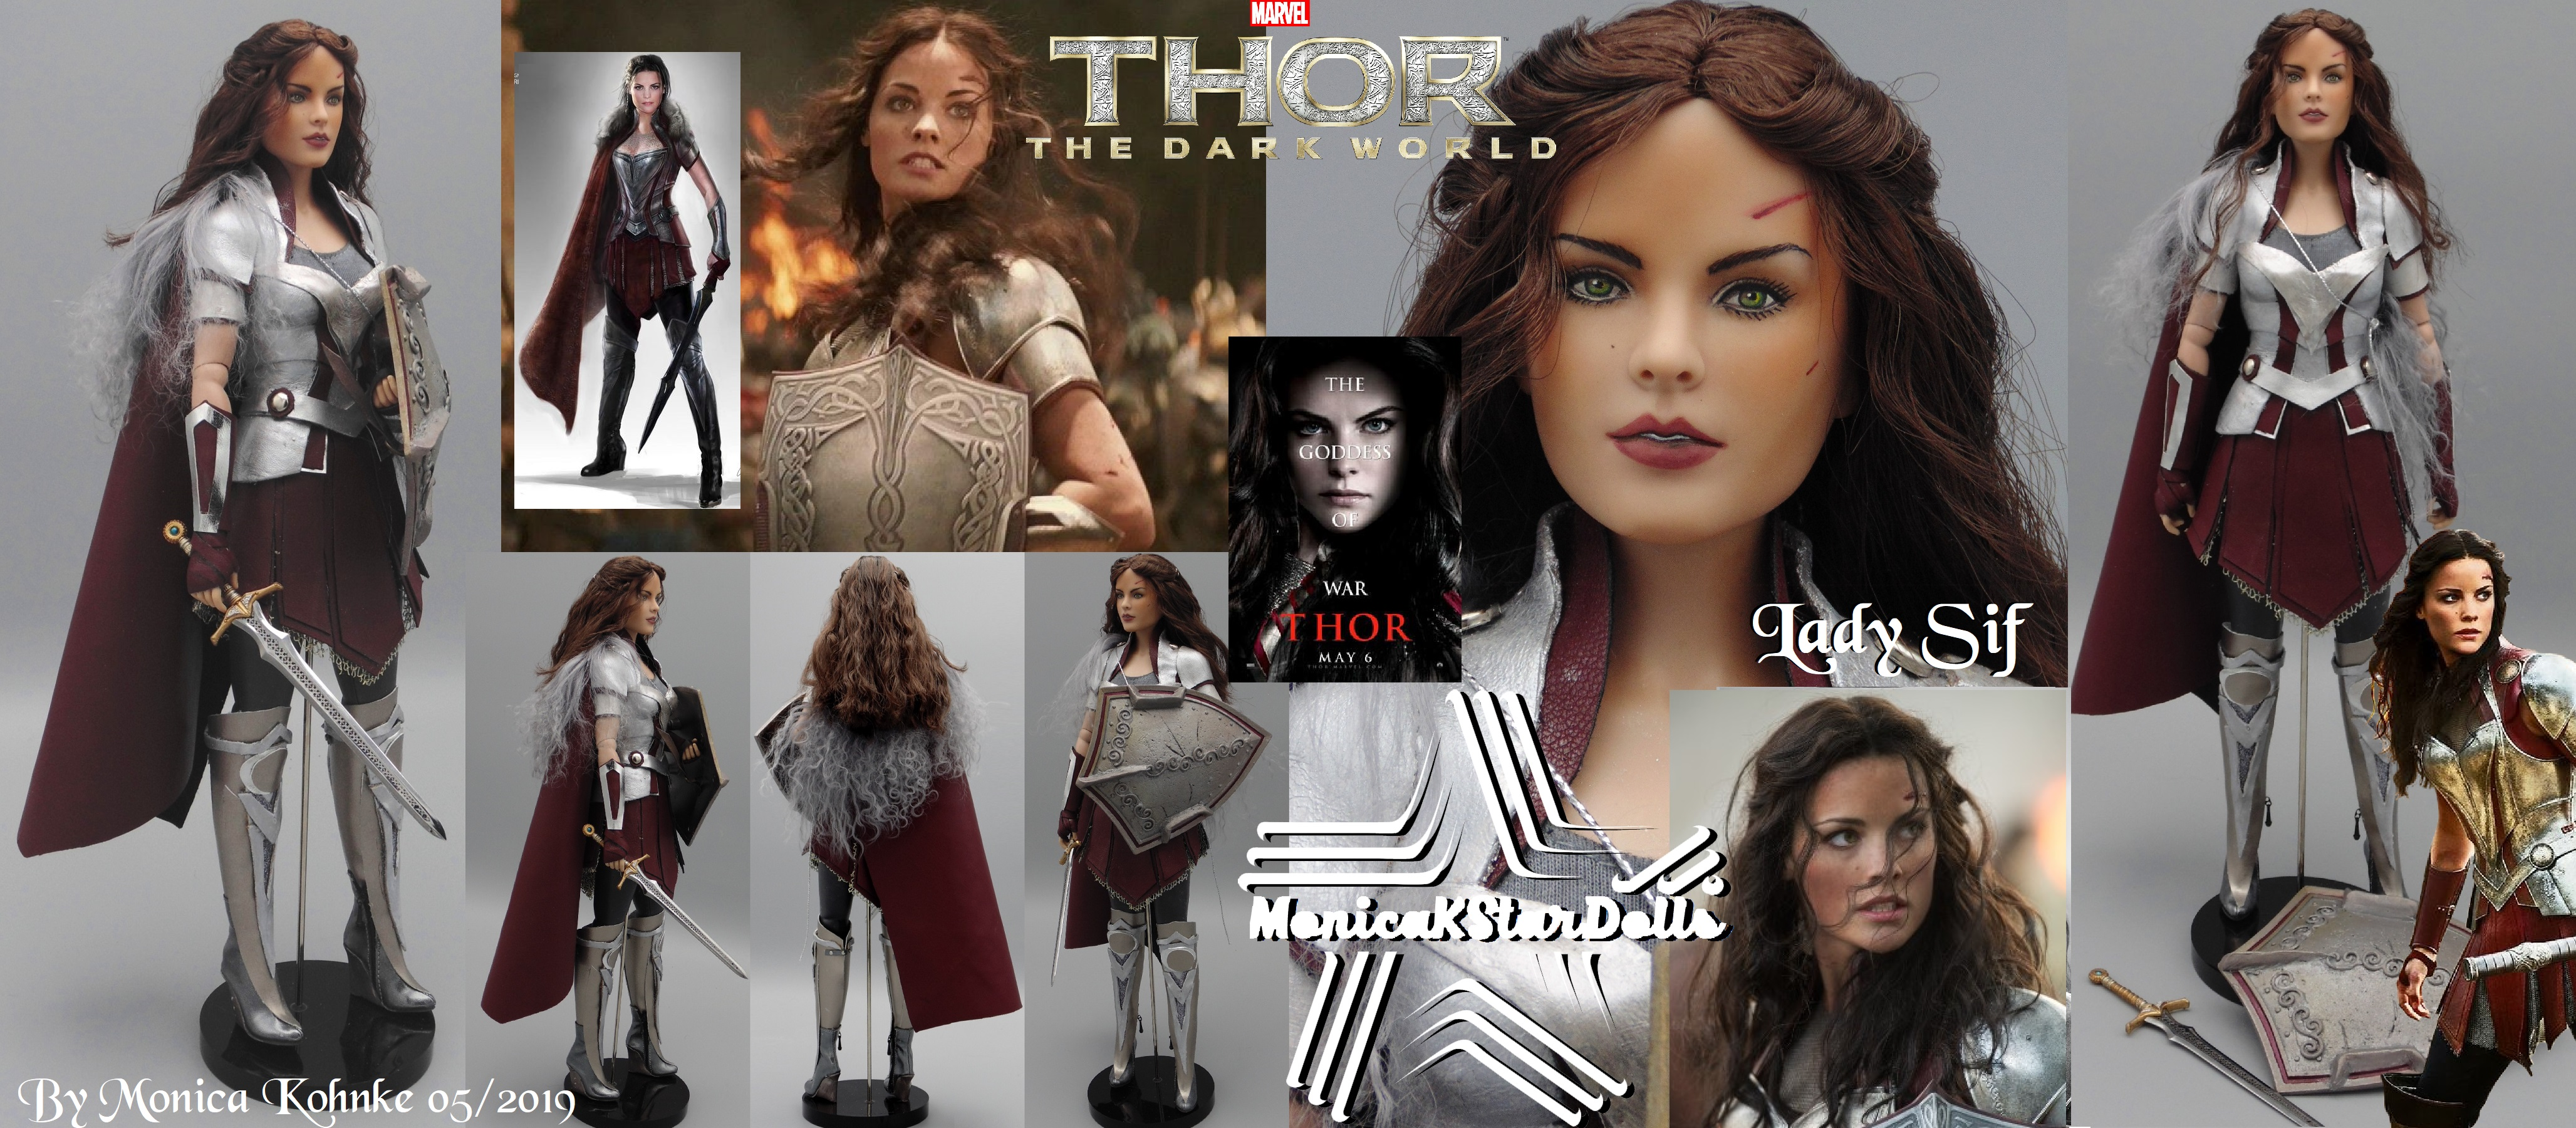 Lady Sif Thor Dark World